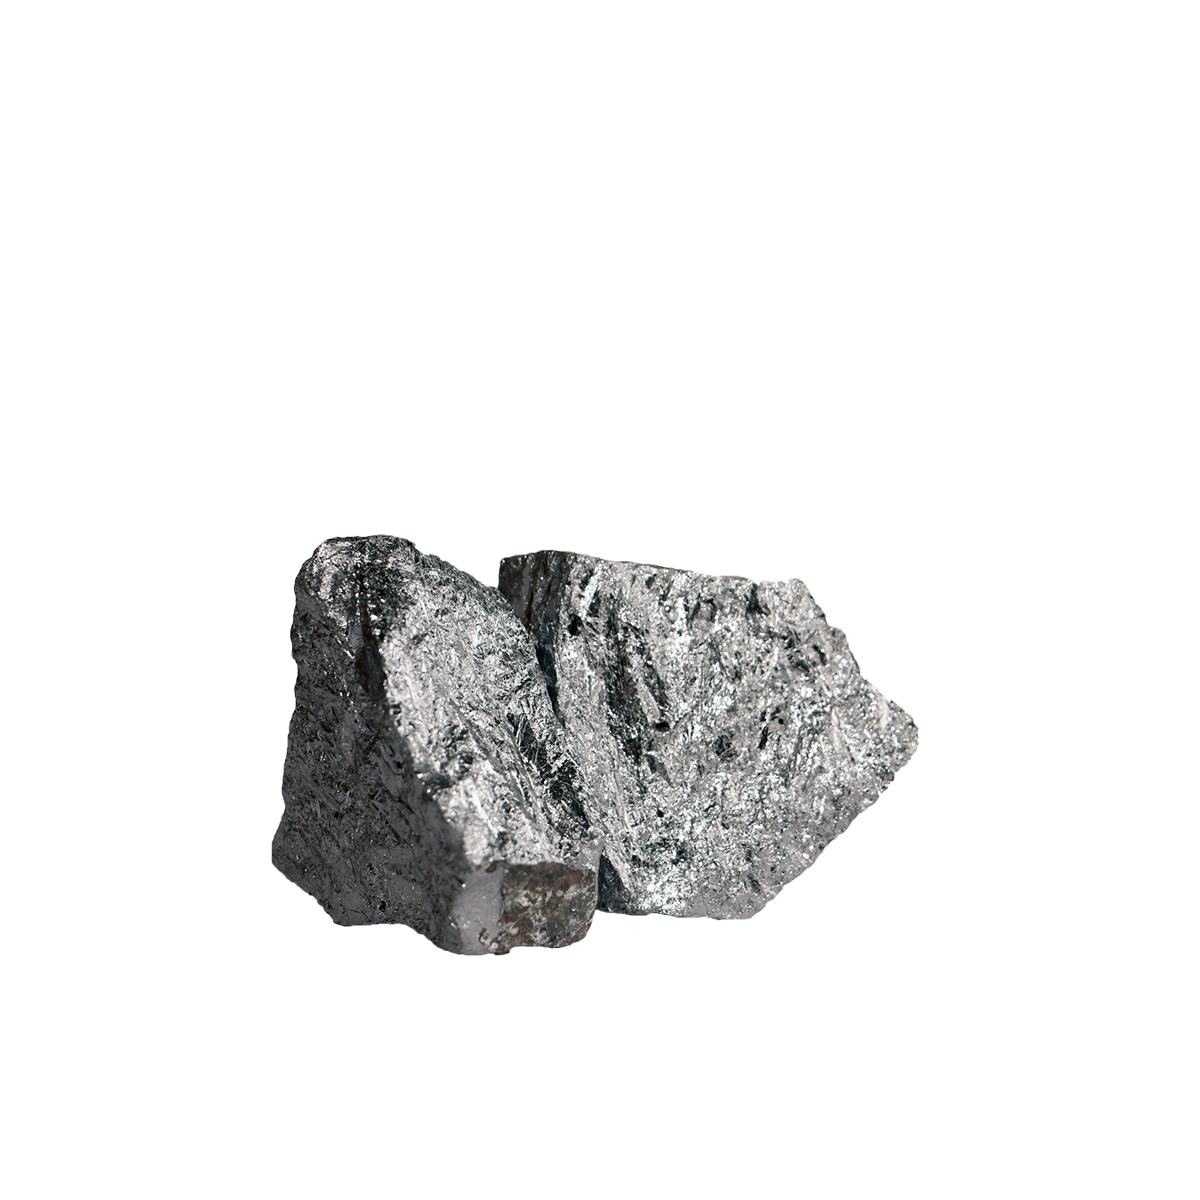 Hot sale Minerals & Metallurgy silicon metal 553 441 3303